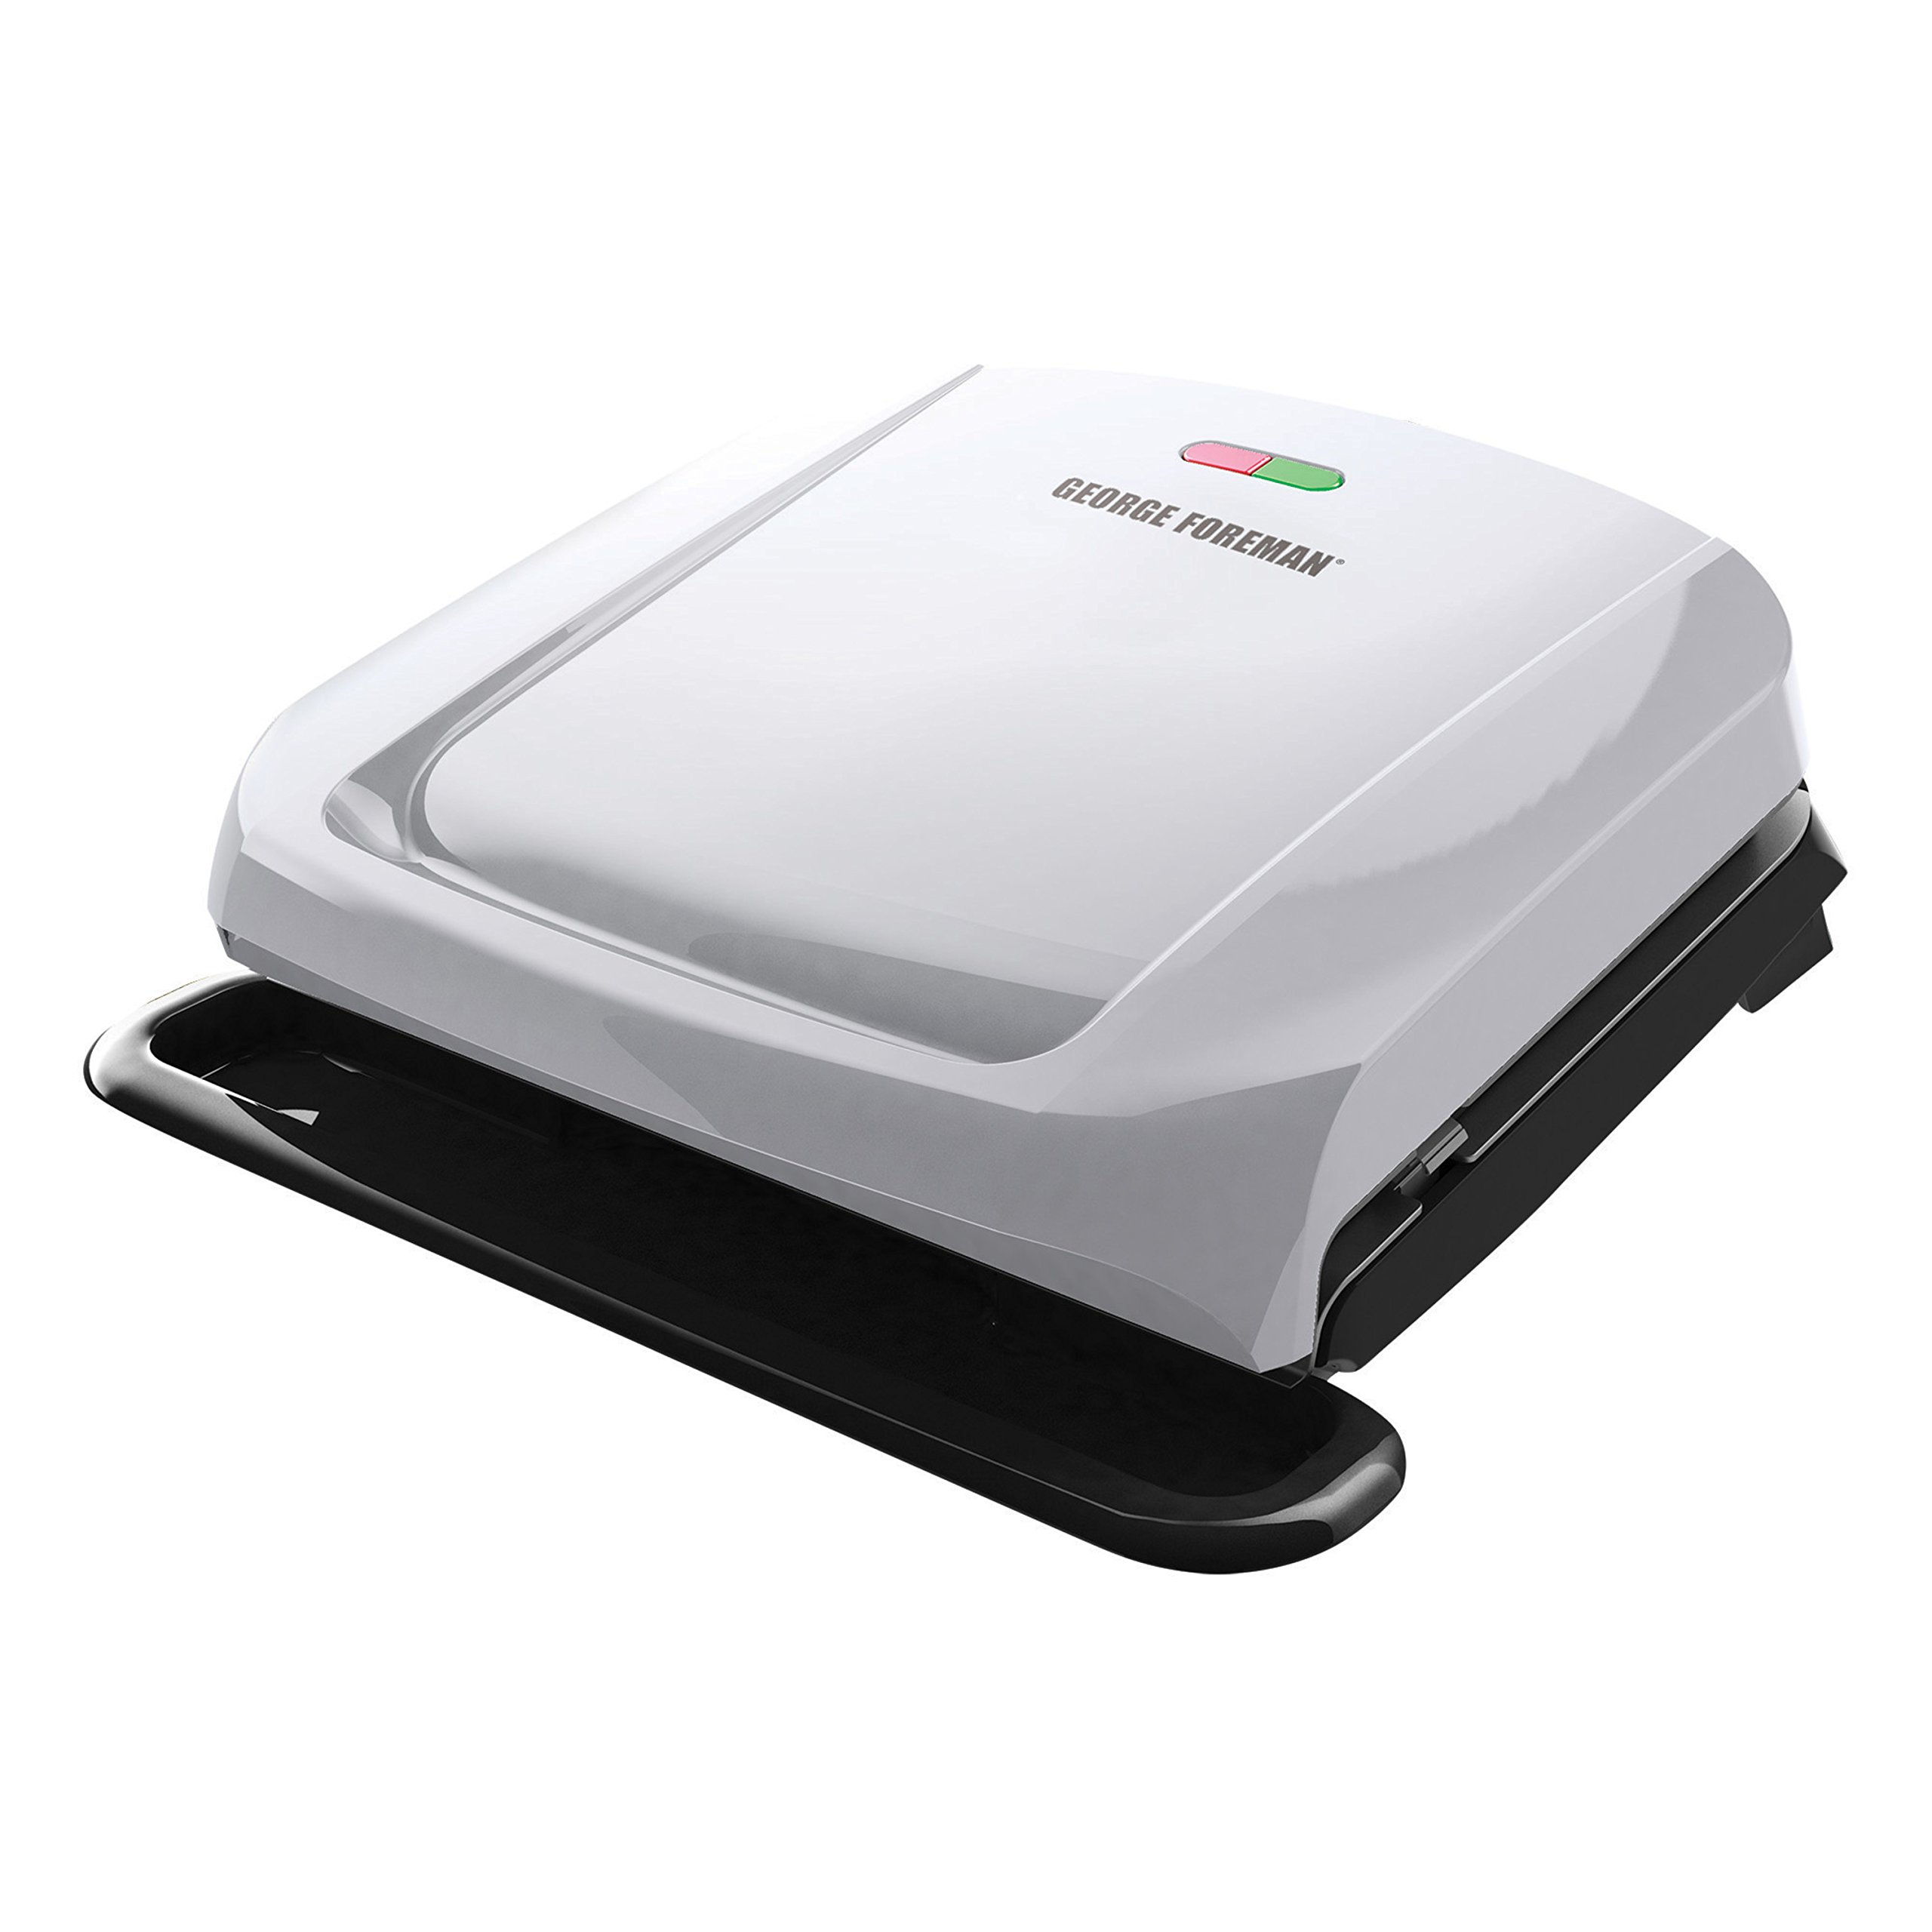 George Foreman 4-Serving Removable Plate Grill and Panini Press, Platinum, GRP1060P by George Foreman